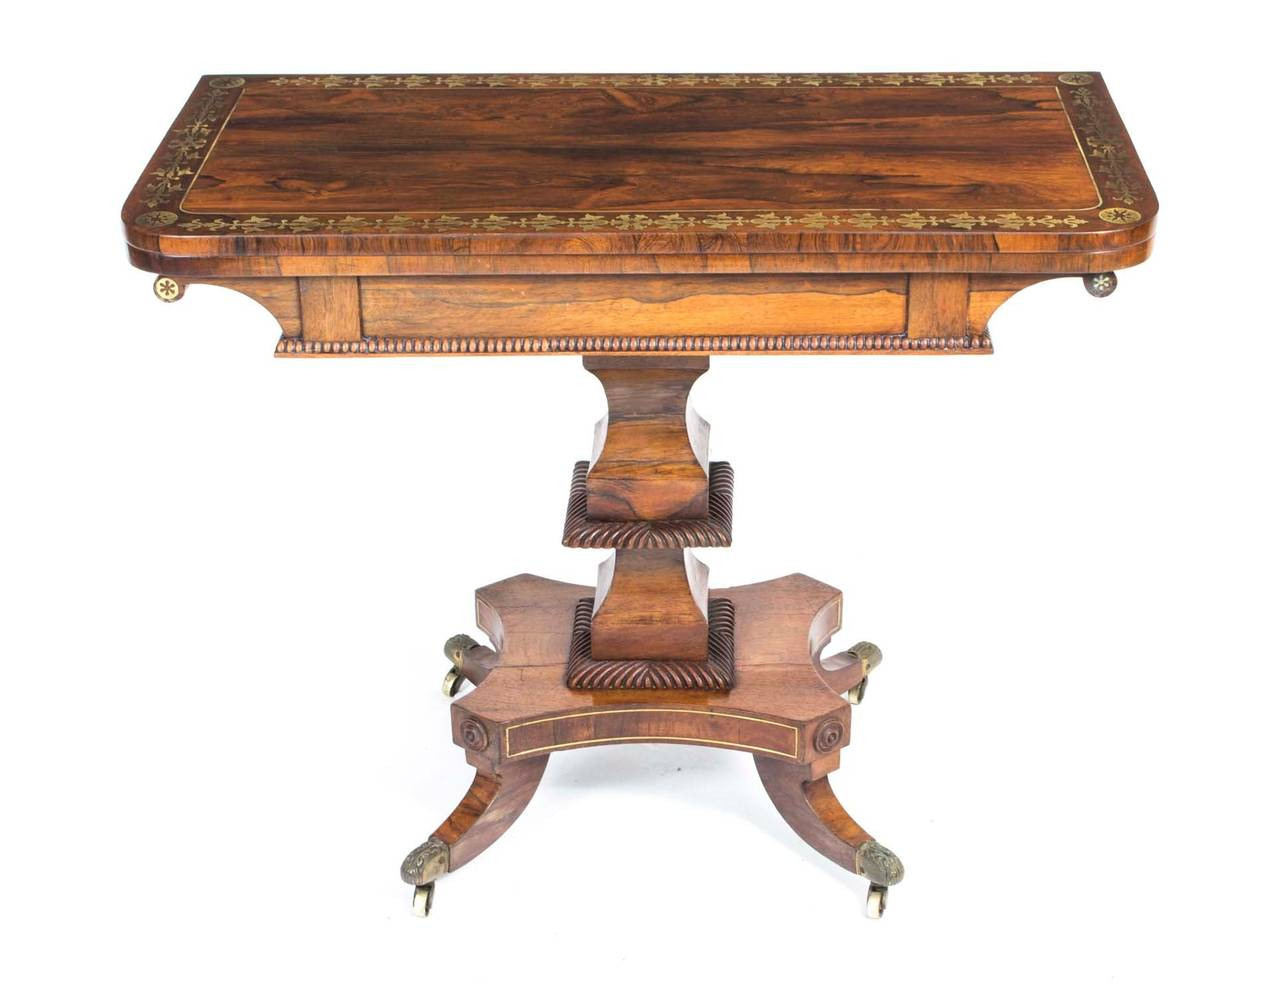 Antique card table regency card table inlaid card table antique - Antique Regency Rosewood Brass Inlaid Card Table C 1815 2